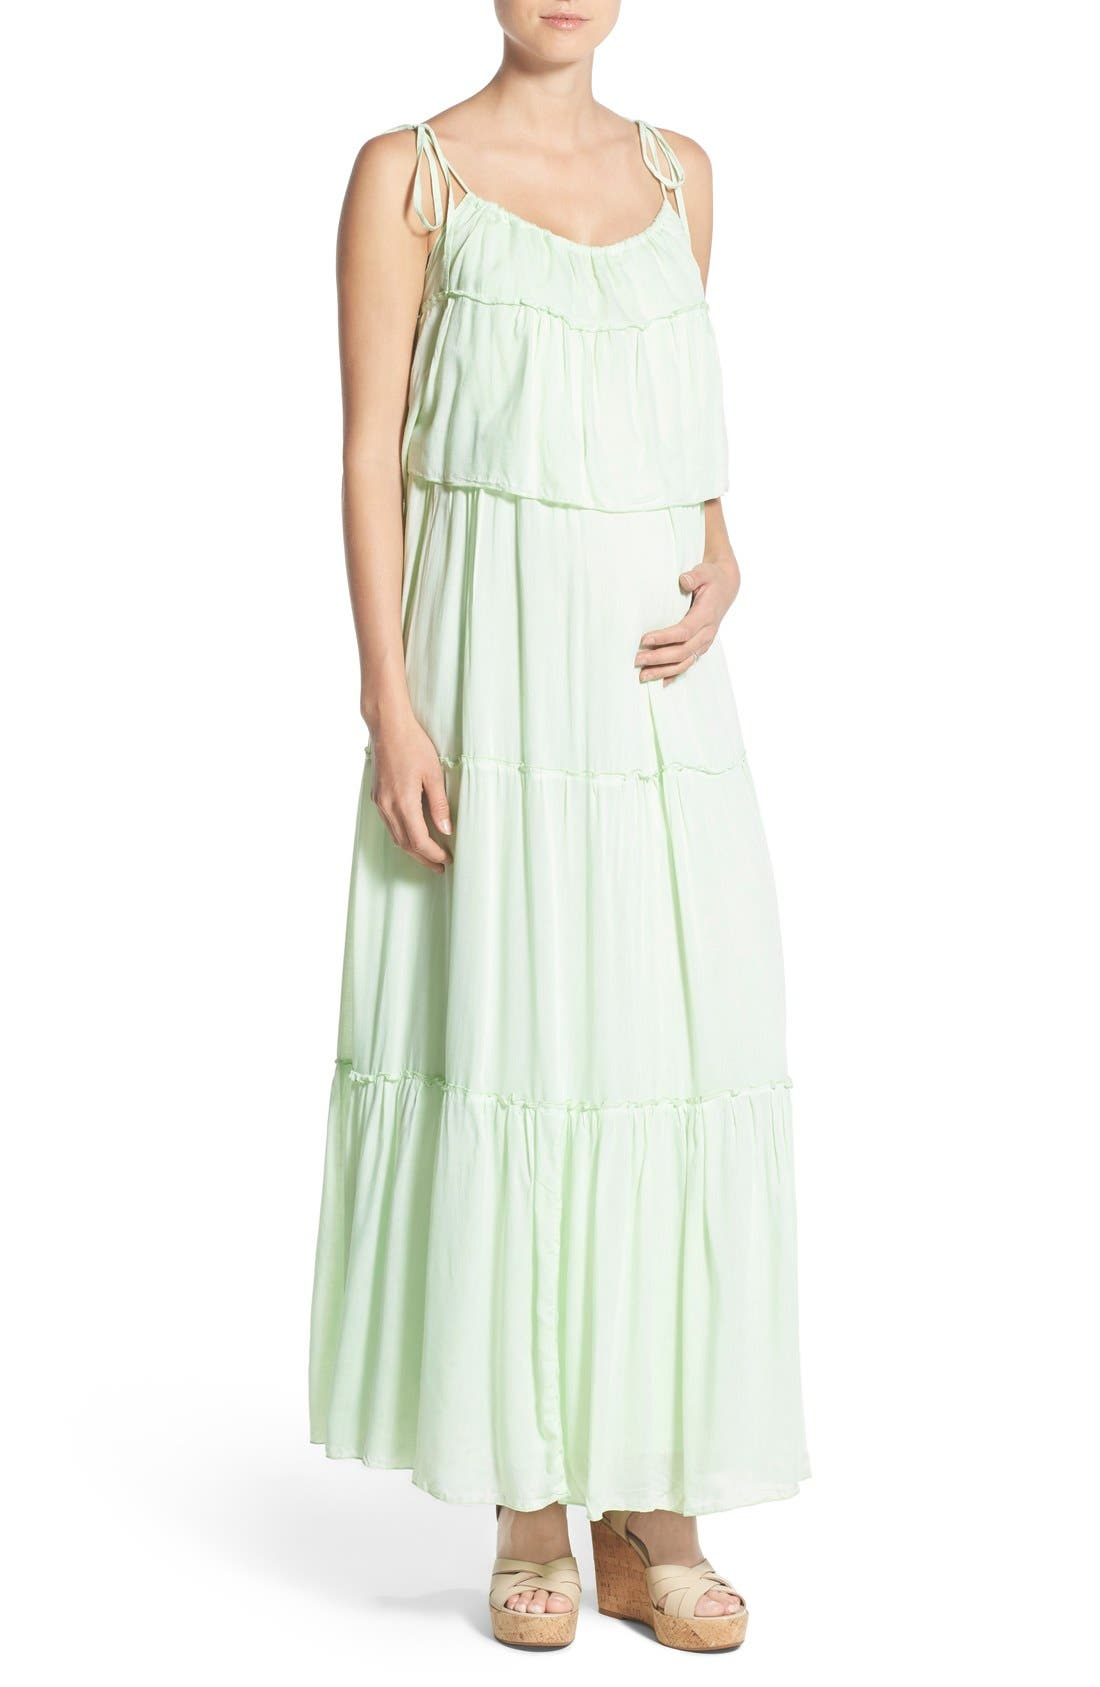 Alternate Image 1 Selected - Fillyboo 'Songbird' Popover Maternity/Nursing Maxi Dress